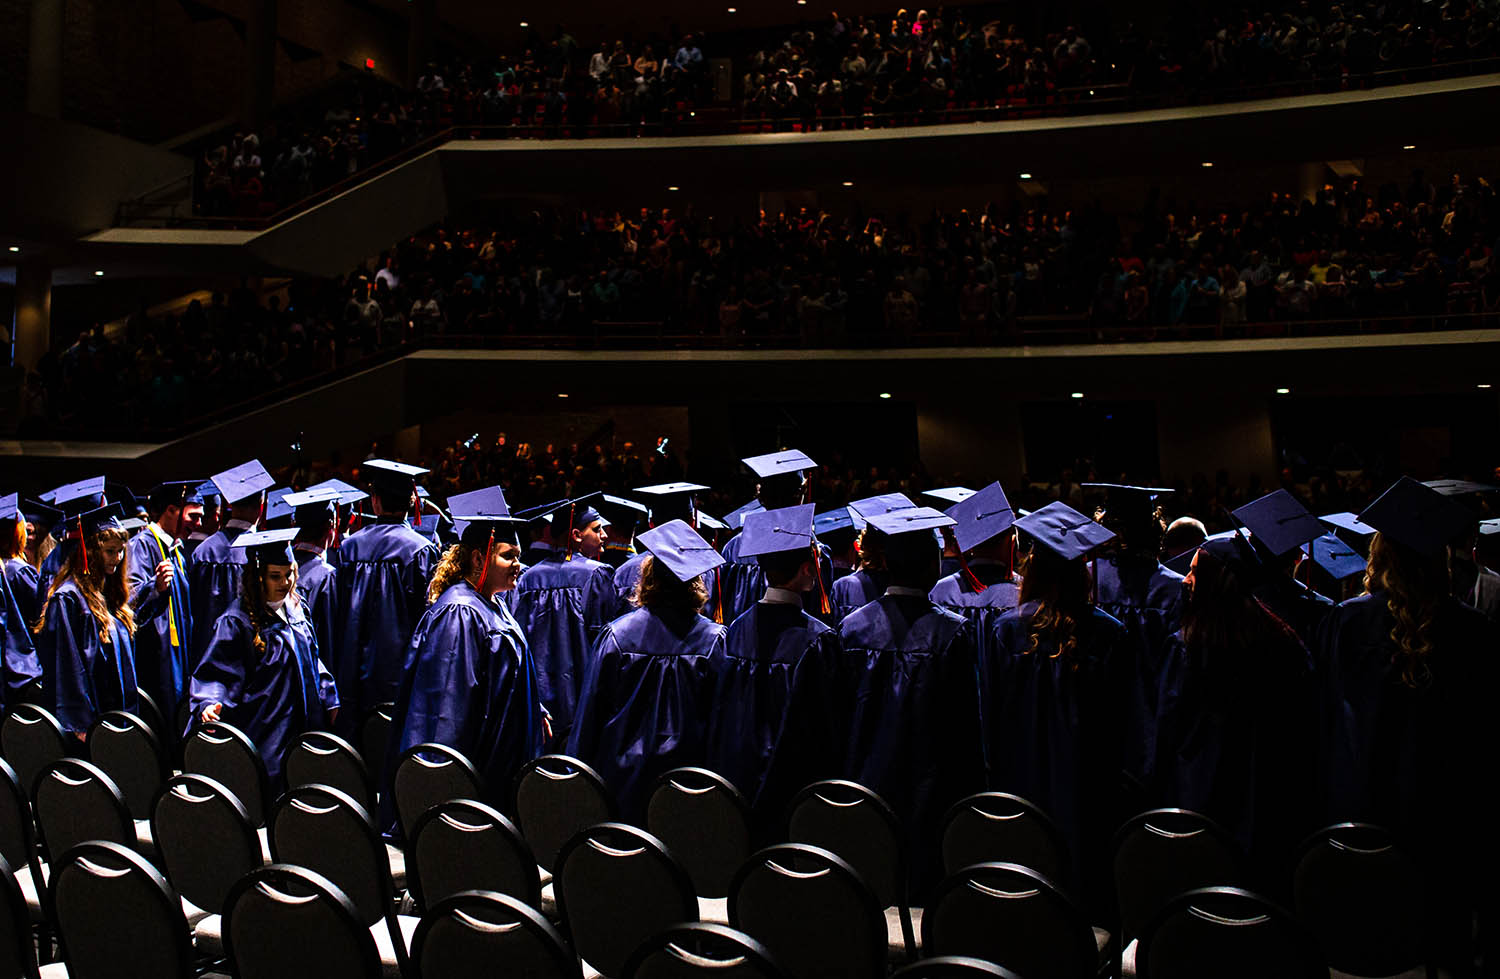 The Class of 2019 at Rochester High School files into their seats for the school's graduation ceremony at the Sangamon Auditorium at the University of Illinois Springfield, Sunday, May 26, 2019, in Springfield, Ill. [Justin L. Fowler/The State Journal-Register]